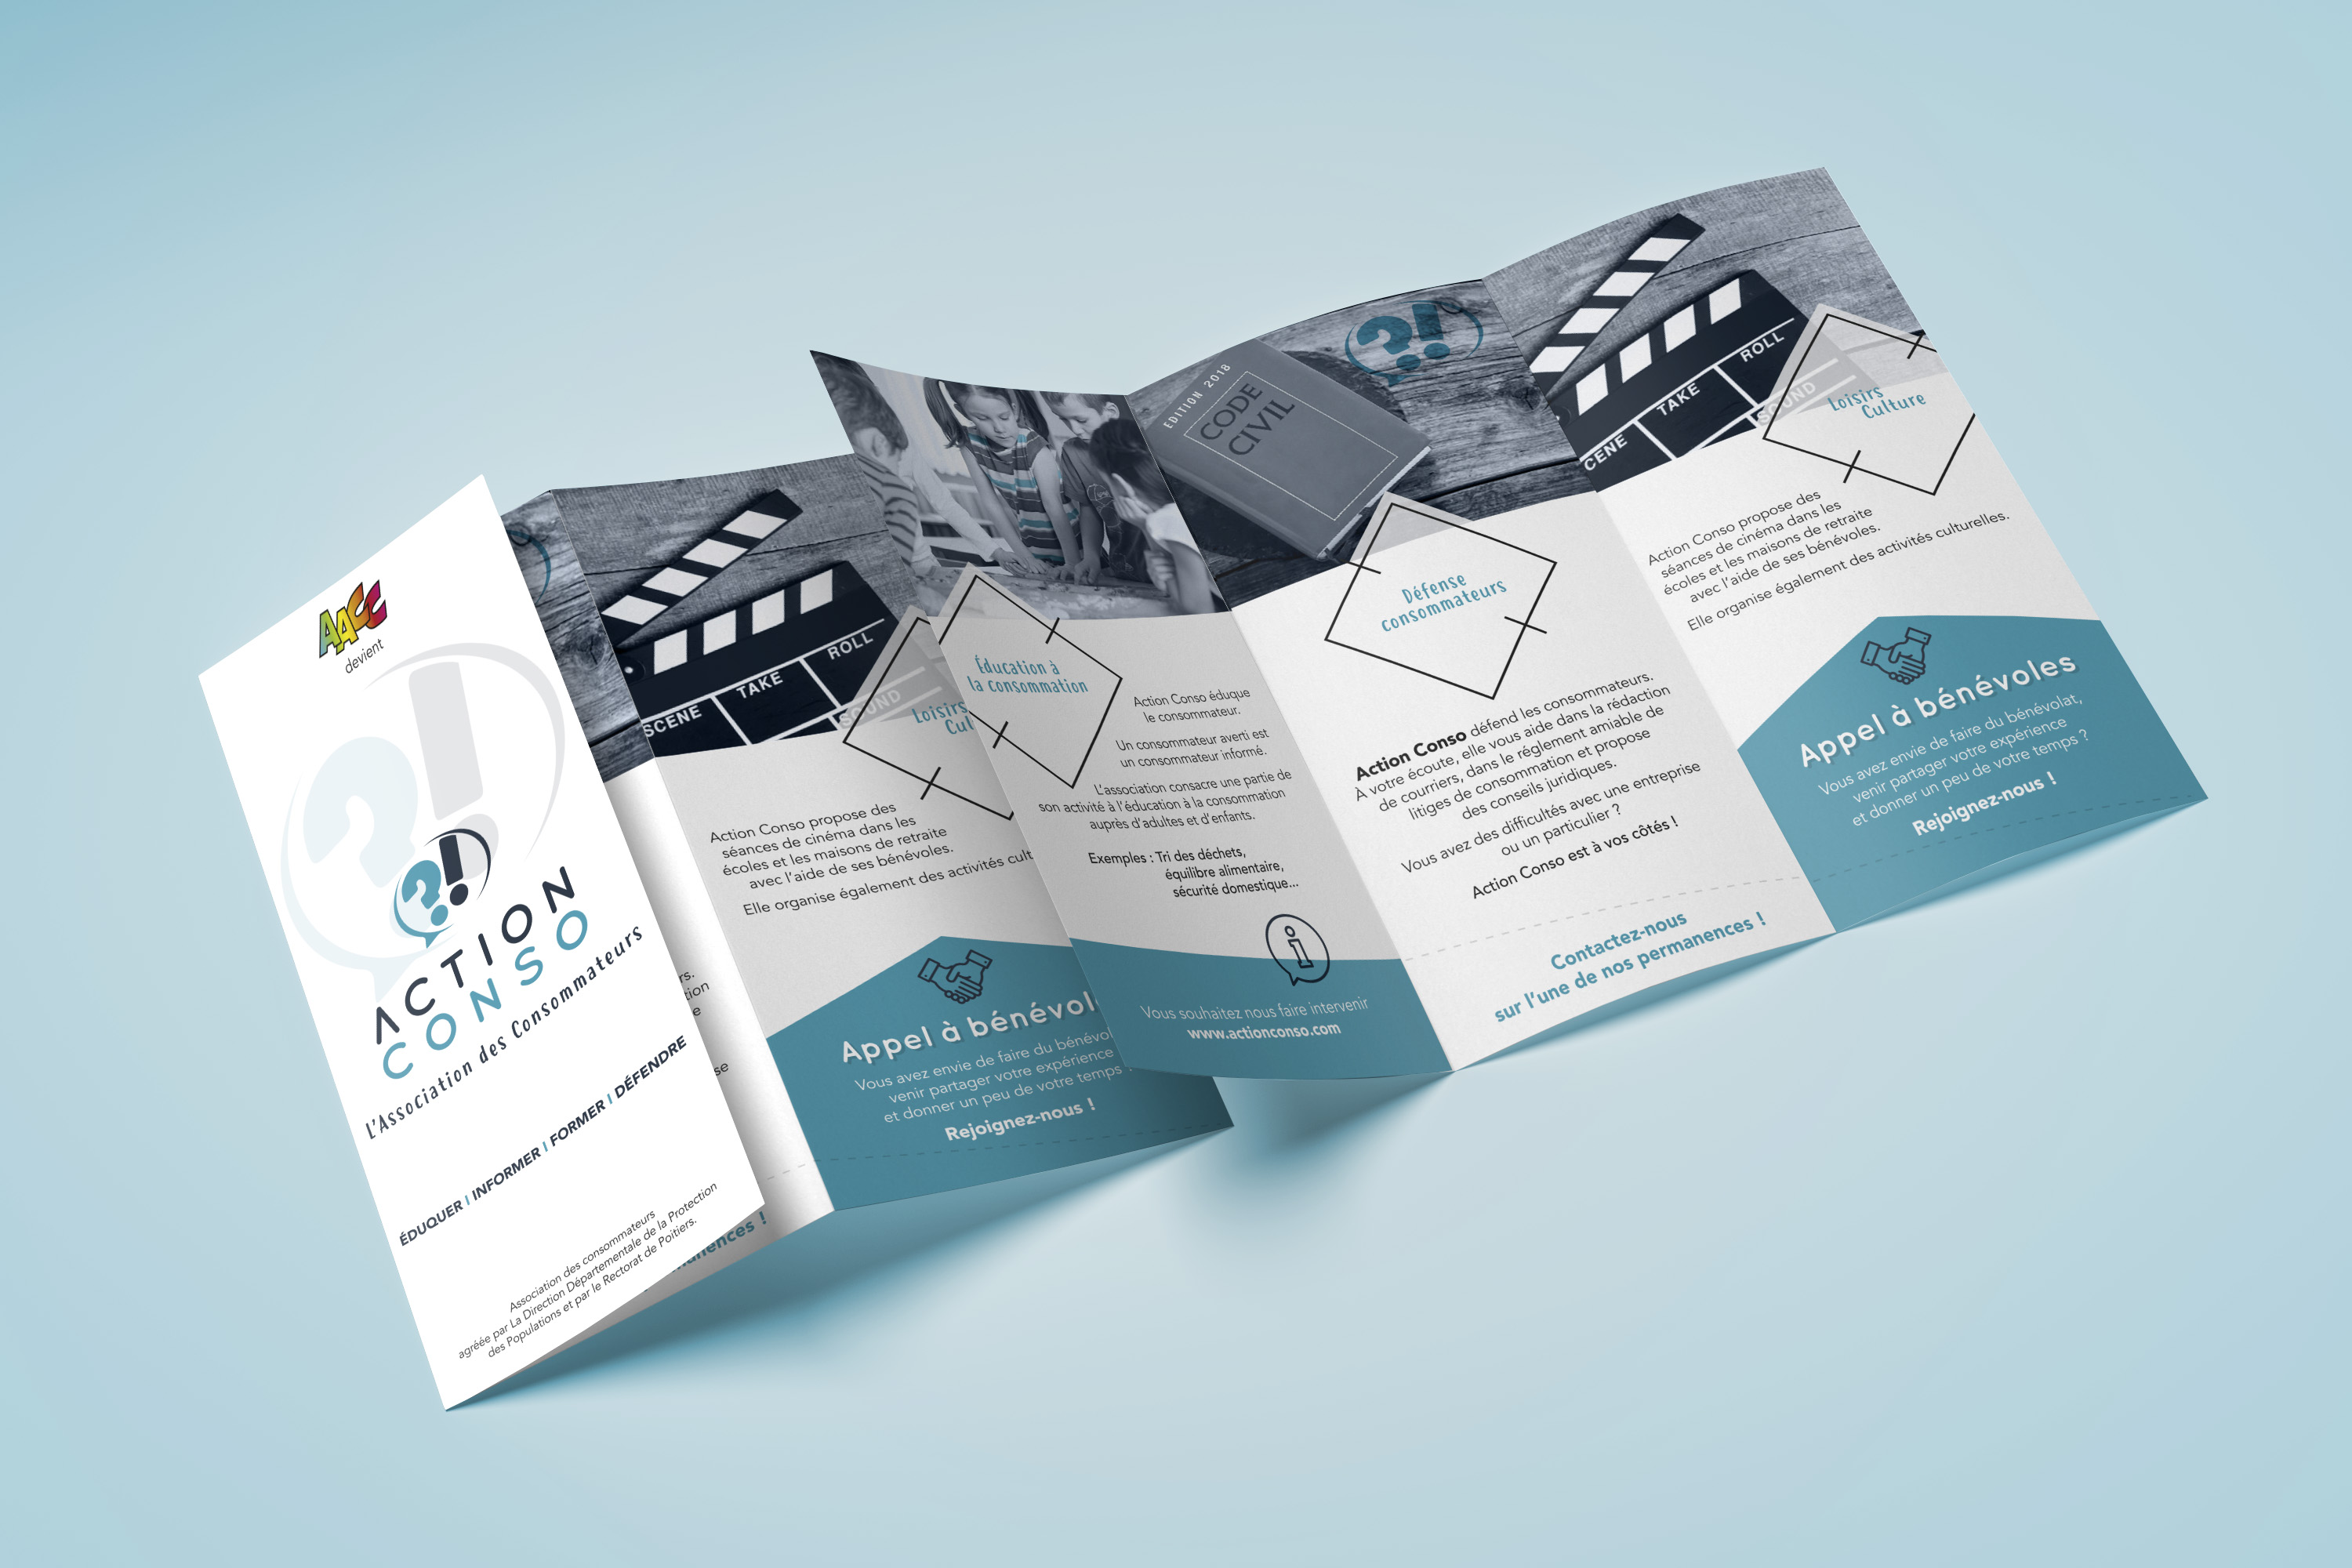 Projet-Action-Conso-ProductDesign-Flyer-Julia-Capdebos.jpg